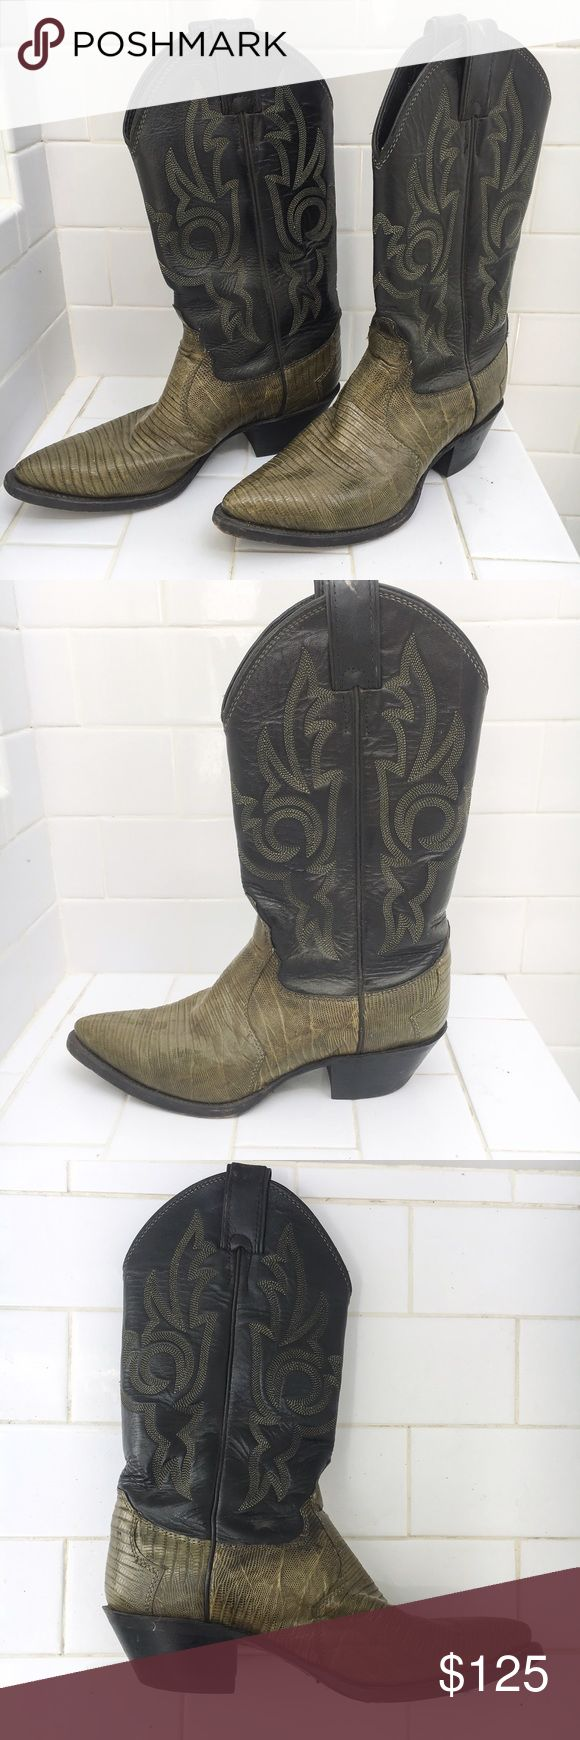 Vintage Olive Green Snakeskin Cowboy Boots Amazing vintage cowboy boots in near perfect condition.  Bottom section is olive green snakeskin and top is black leather with matching green stitch detail.  Very minor wear to the soles. Shoes Heeled Boots